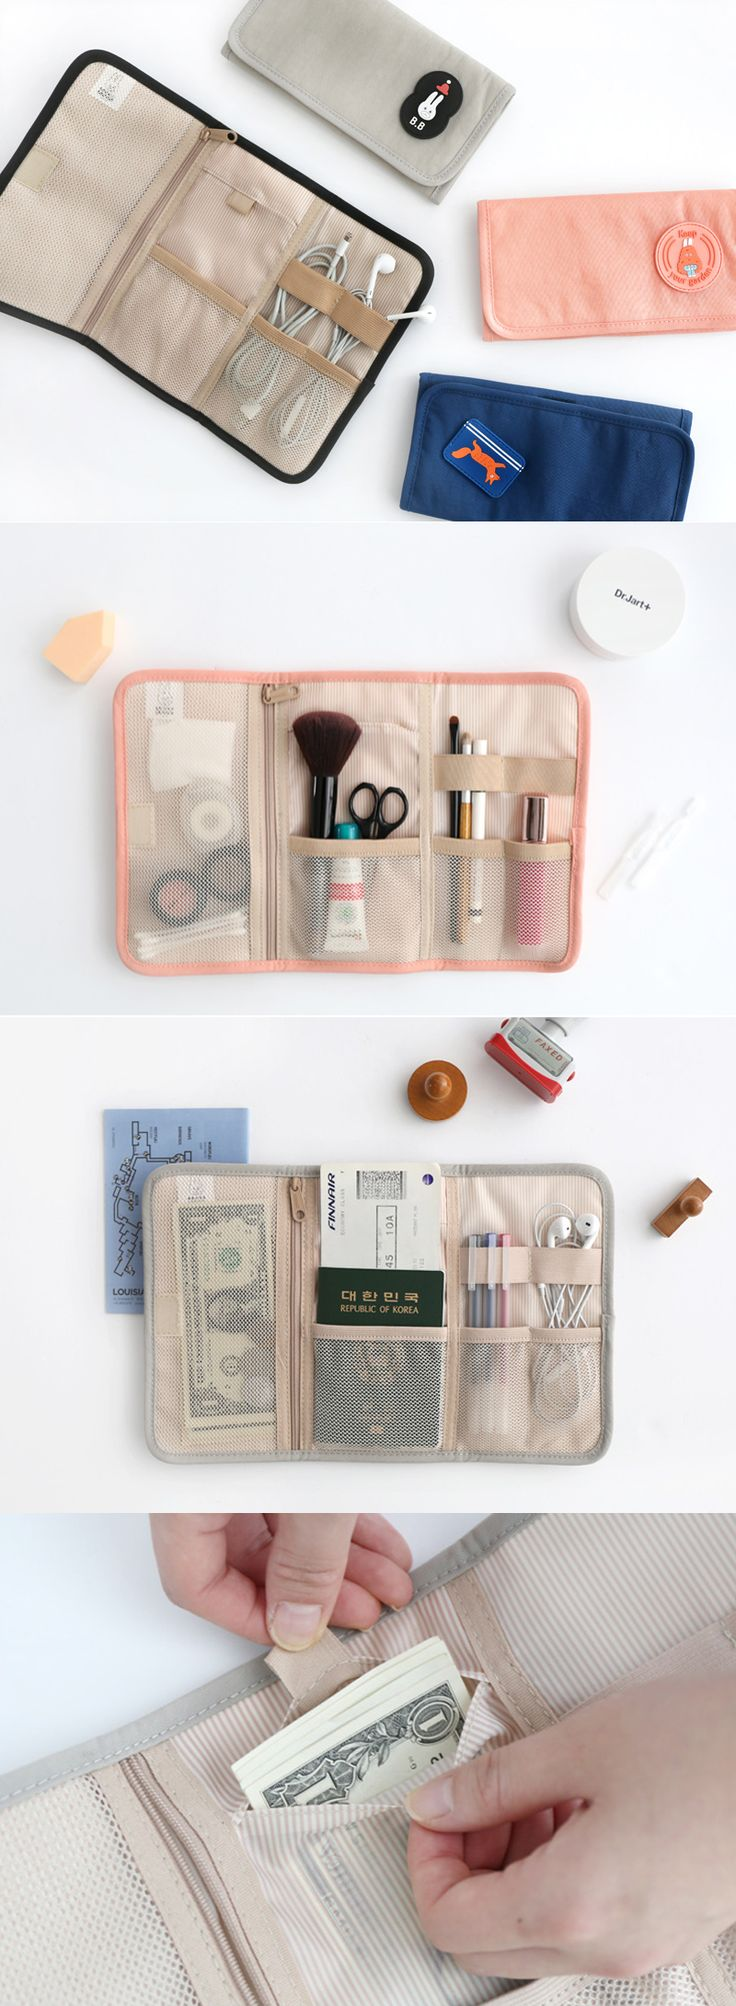 The Brunch Brother Roll Up Organizer is full of charm and practically designed. It rolls or folds up and can be secured with velcro. The 3 interior sections feature 1 mesh zippered pocket for coins, 3 open mesh pockets, 2 wide elastic bands, and 1 bonus secret pocket! This organizer is perfect for travel accessories, makeup, planner supplies, and loose device cords. It's a versatile must have, so check it out!